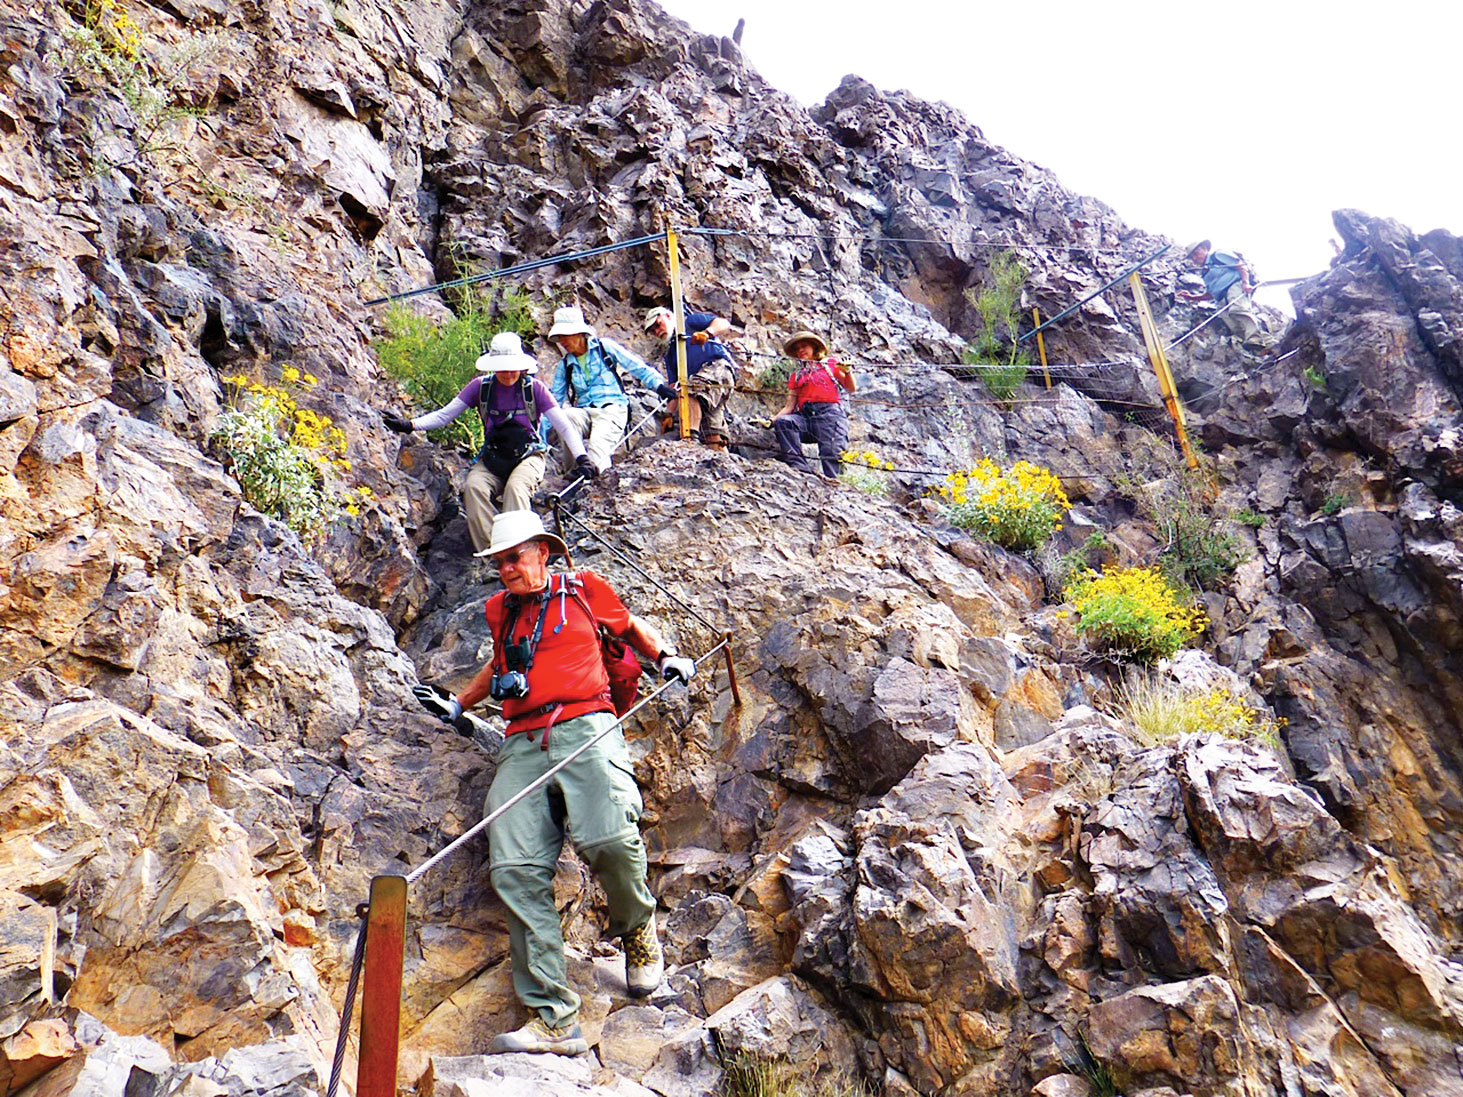 The Picacho Peak Loop was hiked to view the traditional display of Mexican poppies, lupine and globemallow below Picacho Peak. The hike to the top of the peak was an adventure as shown in the accompanying photo. Hikers were Cheryl Werstler, Karen Cusano, Anne Stanley, Harry Good, Jeff Traft, Neil Christensen and Elisabeth Wheeler.